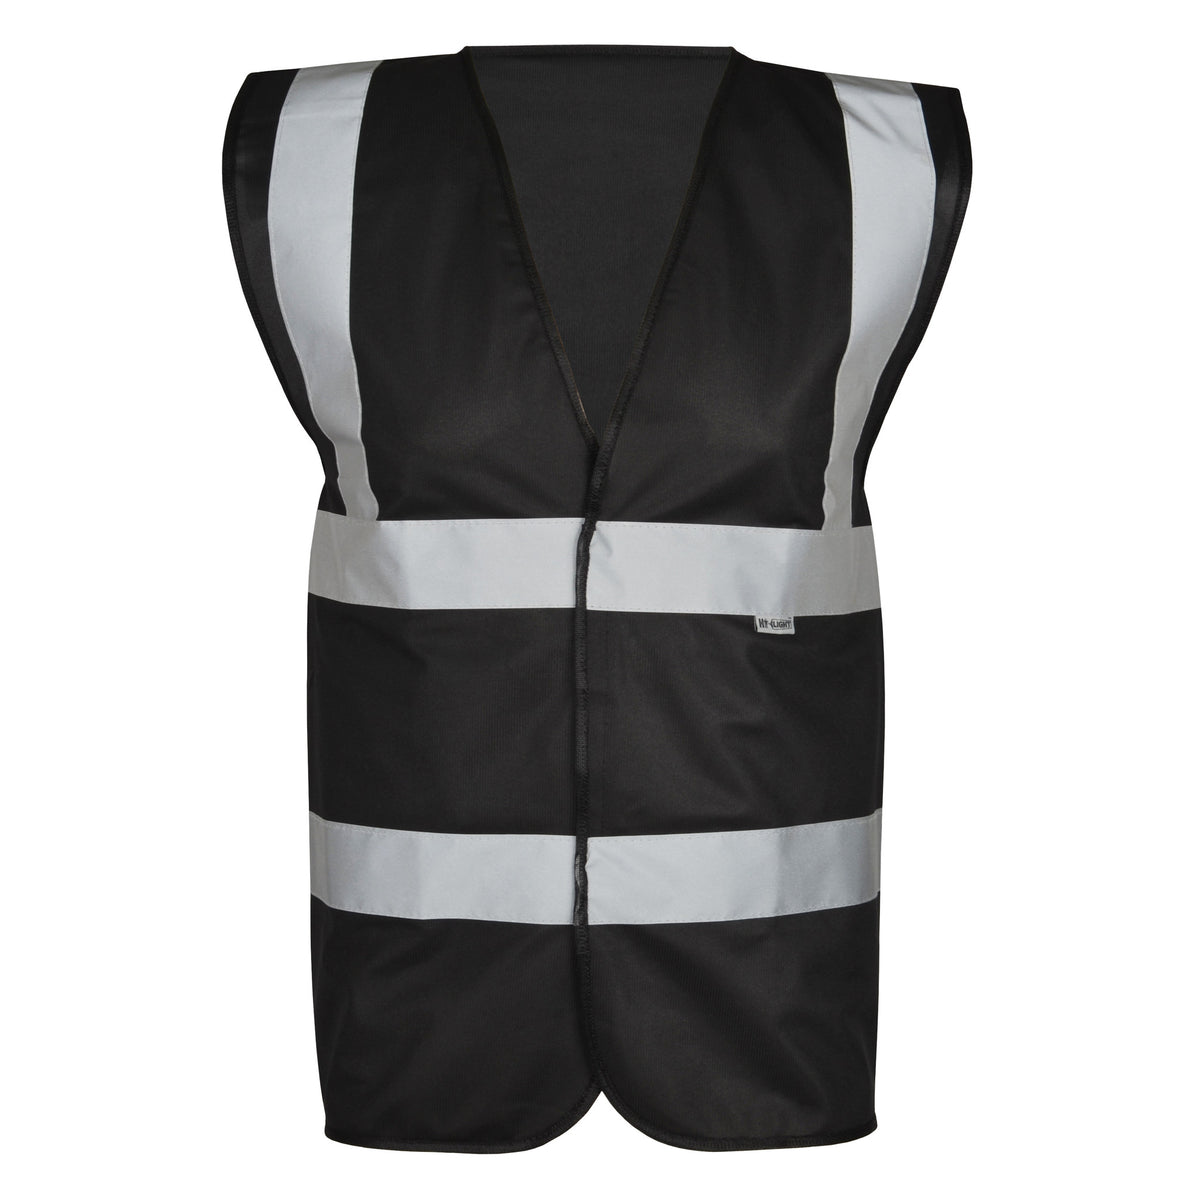 Enhanced Visibility Vest - peterdrew.com  - 2